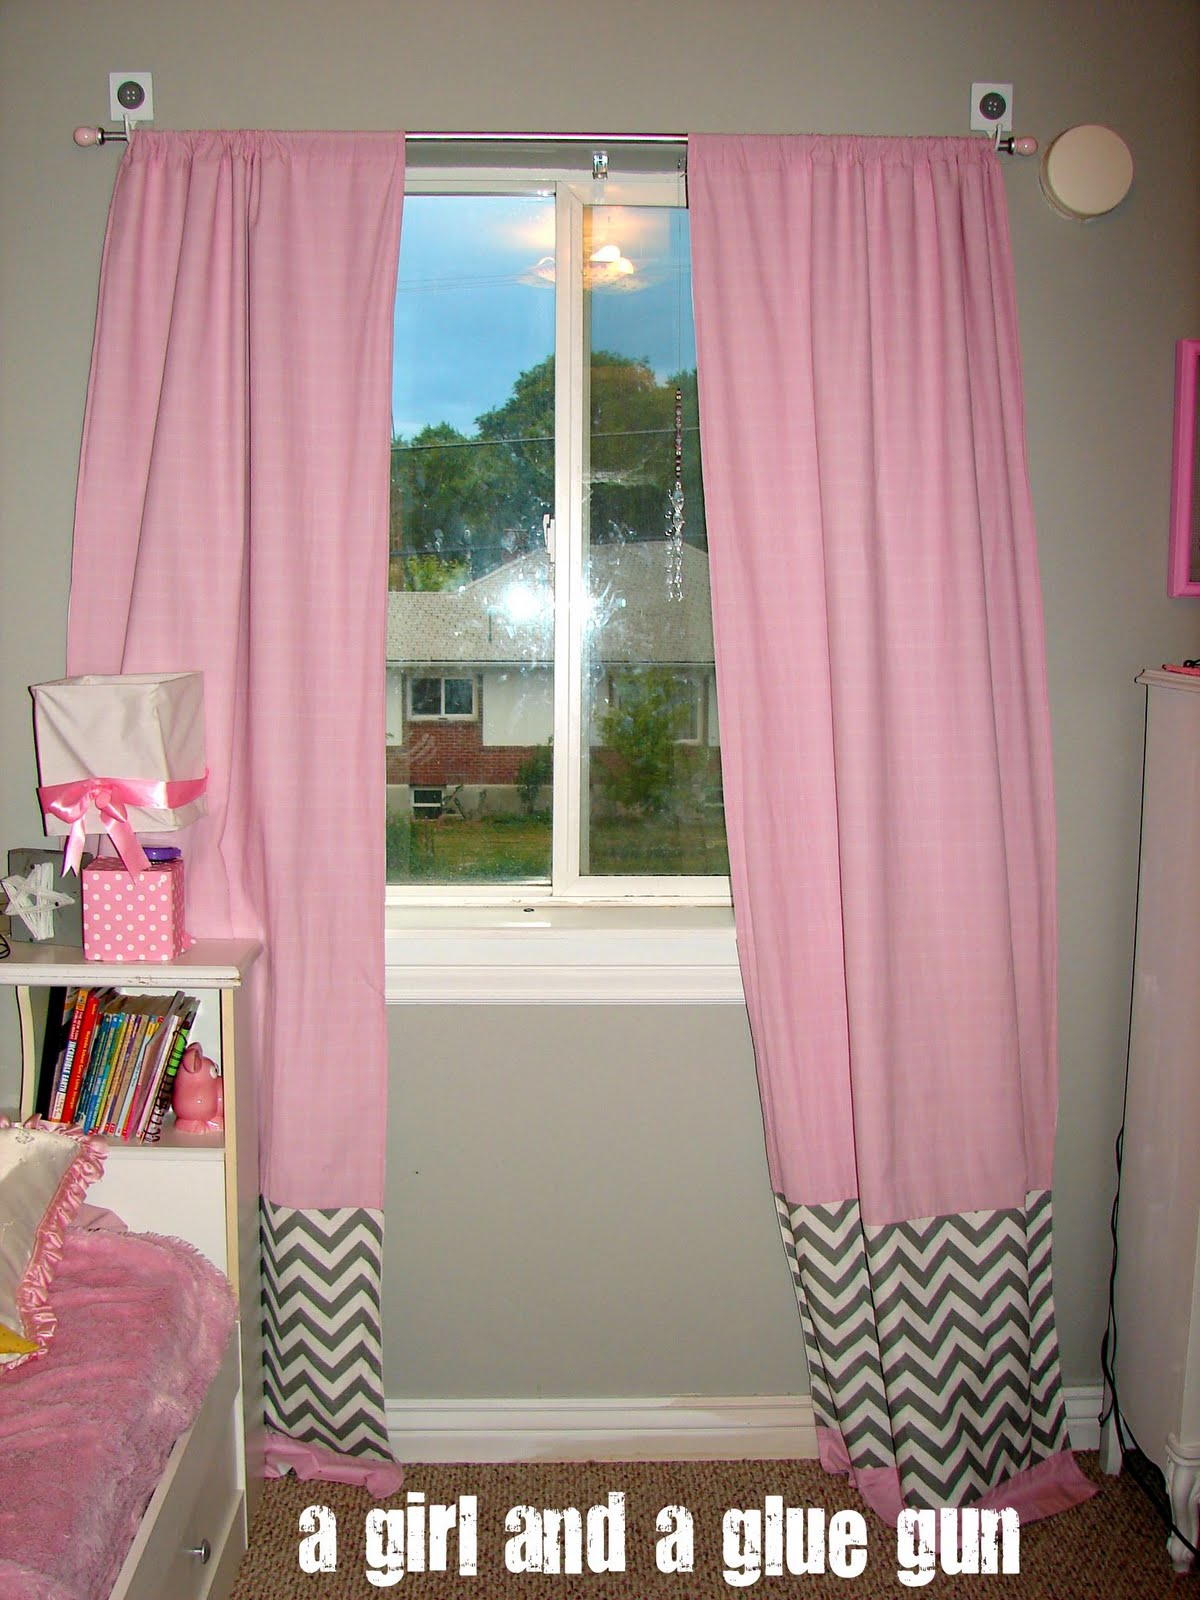 Hot pink curtains - Curtains